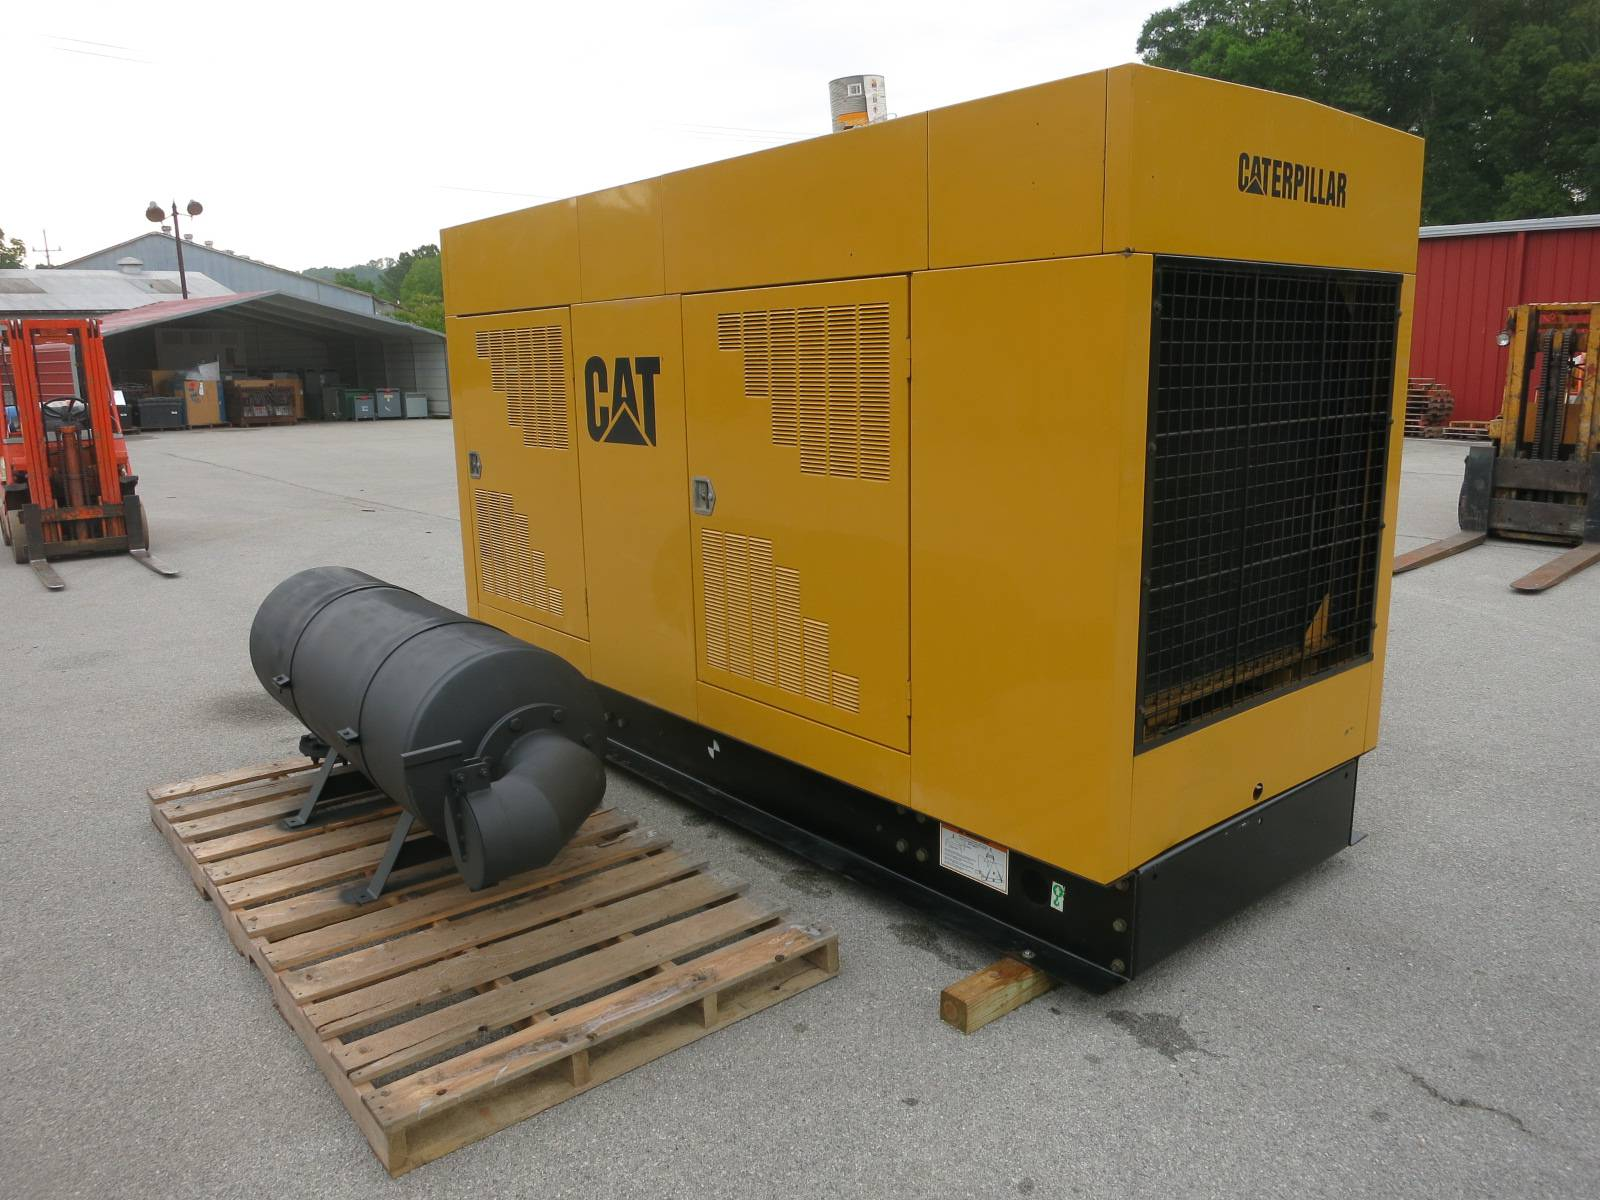 Caterpillar 400 kW CAT 3406 Diesel SR4B Generator Set 809Hrs